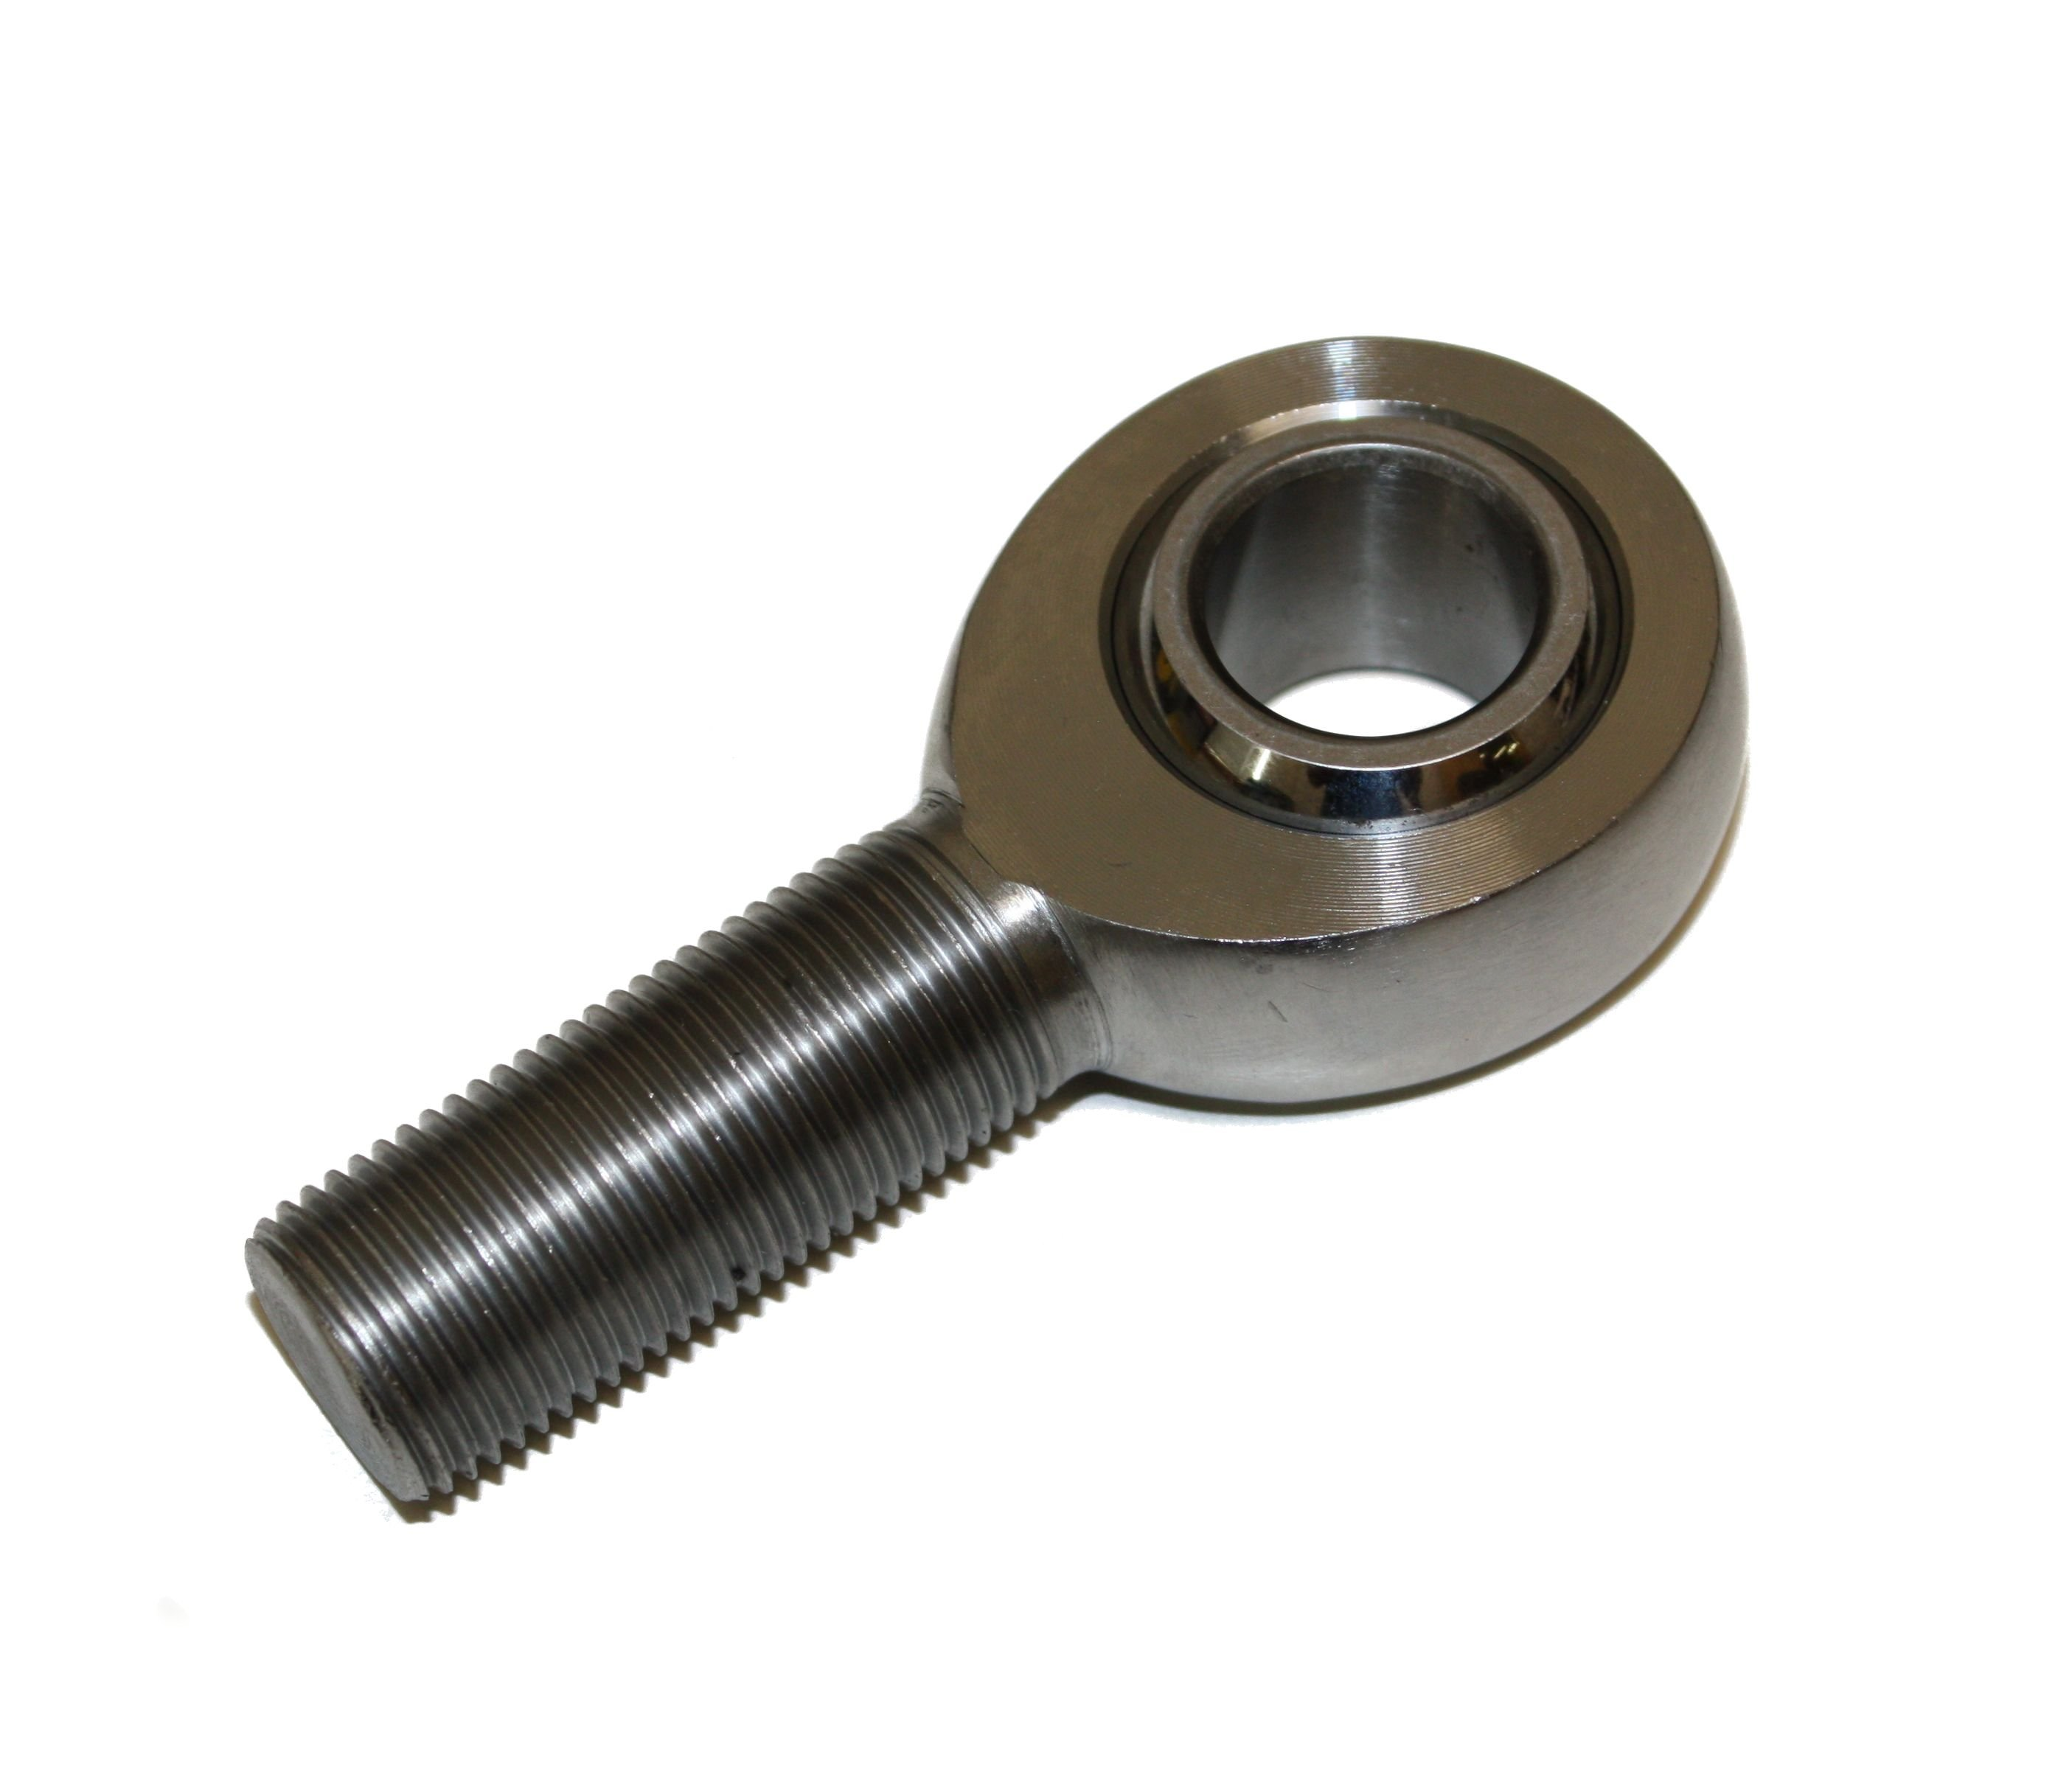 "Spherical Rod End; 3/4-16 Thread; 3/4"" Hole"